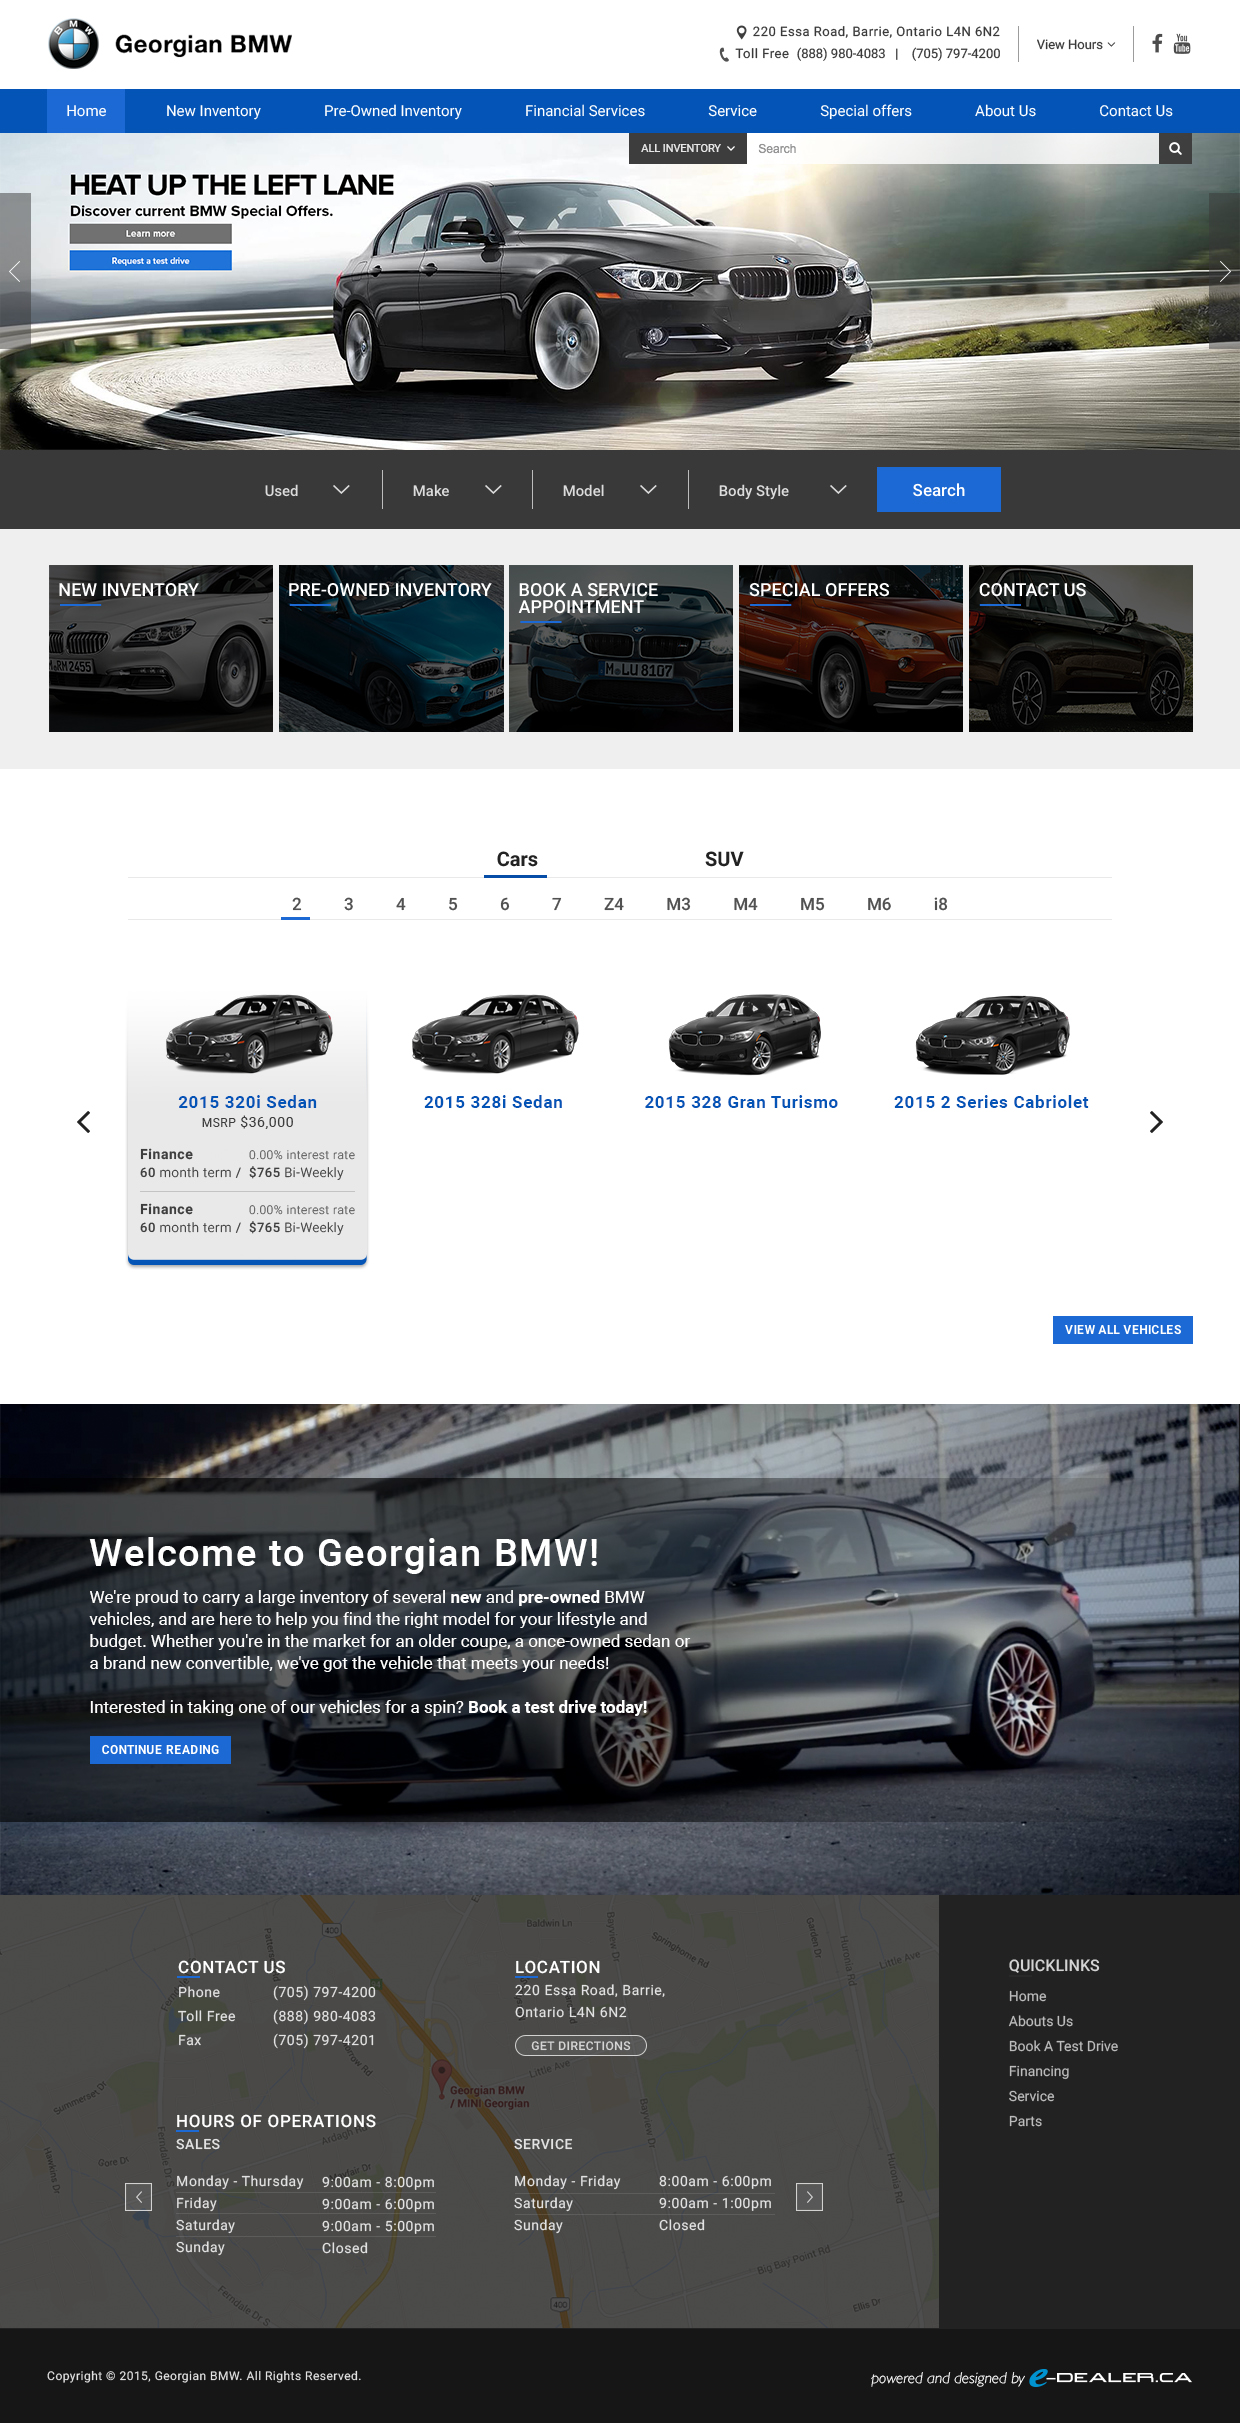 GeorgianBMW-Design-Final